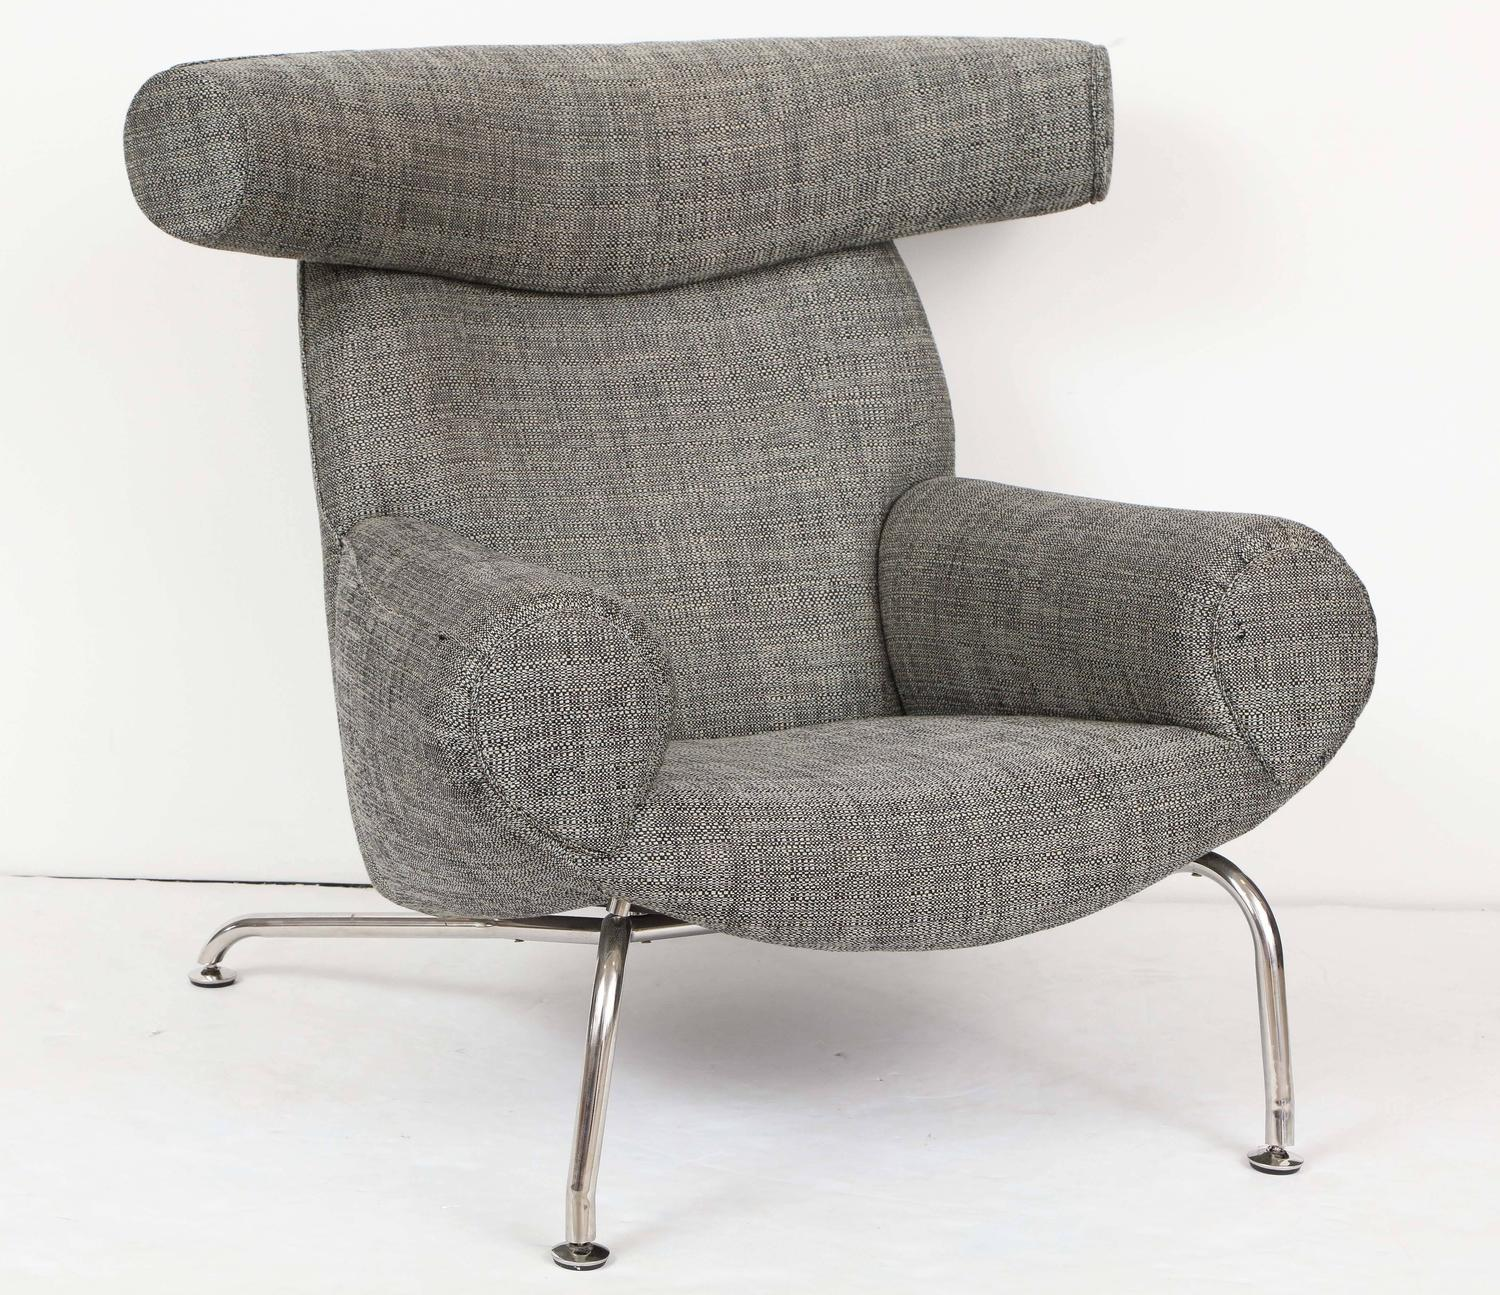 ox chair by hans wegner in romo fabric for sale at 1stdibs. Black Bedroom Furniture Sets. Home Design Ideas